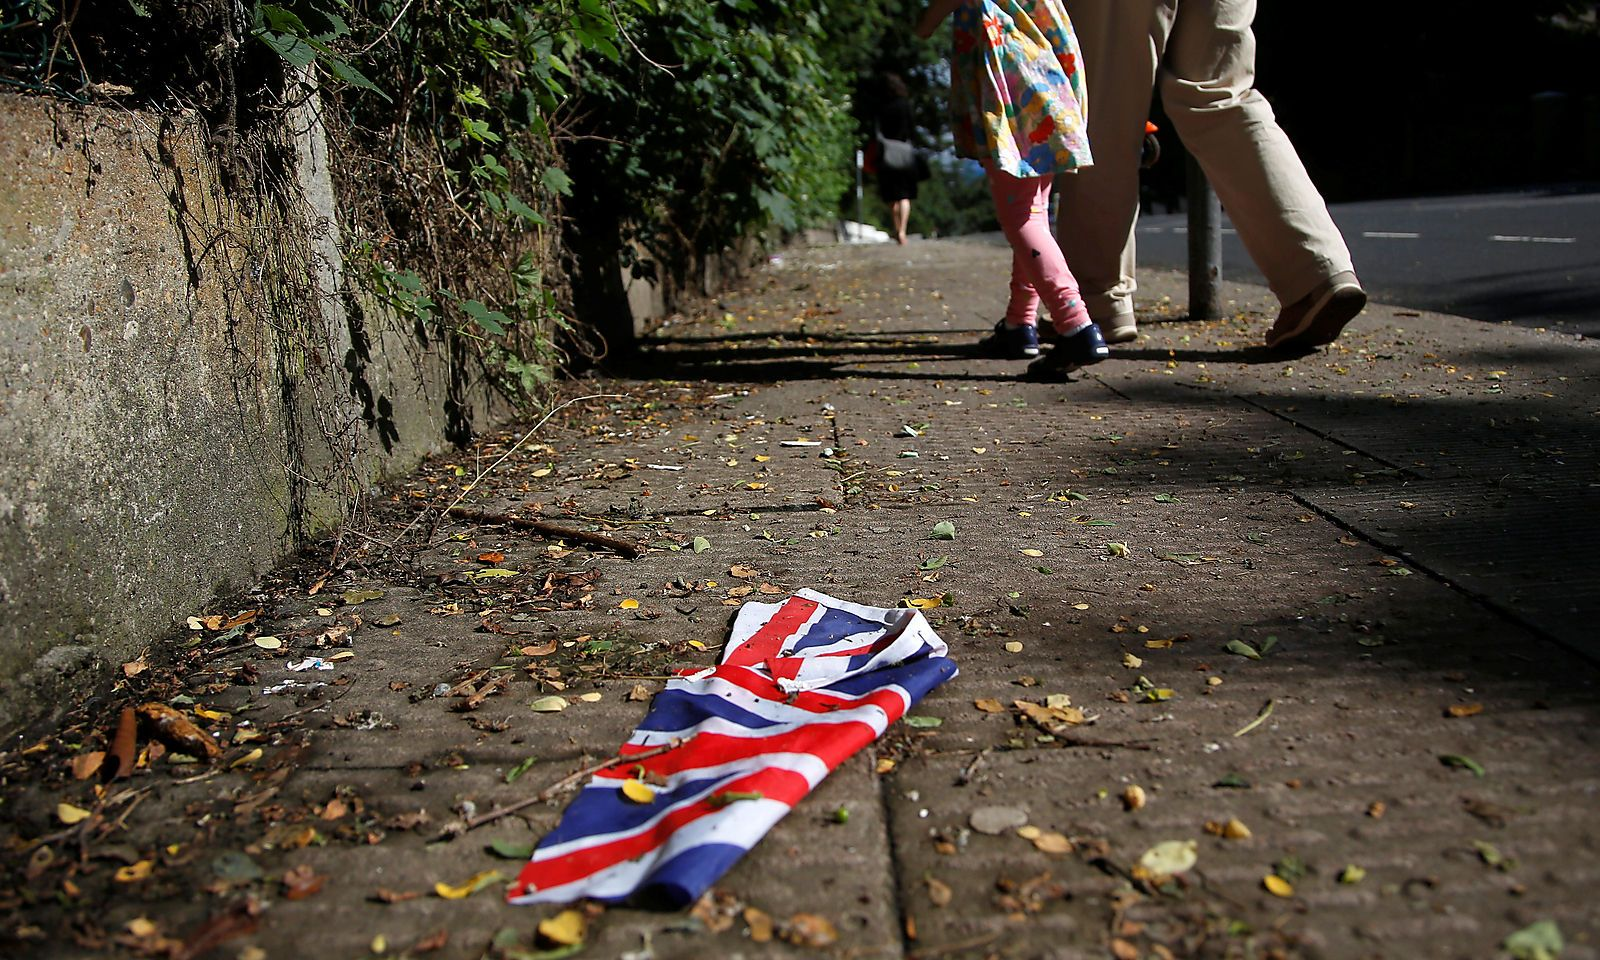 A British flag which was washed away by heavy rains the day before lies on the street in London